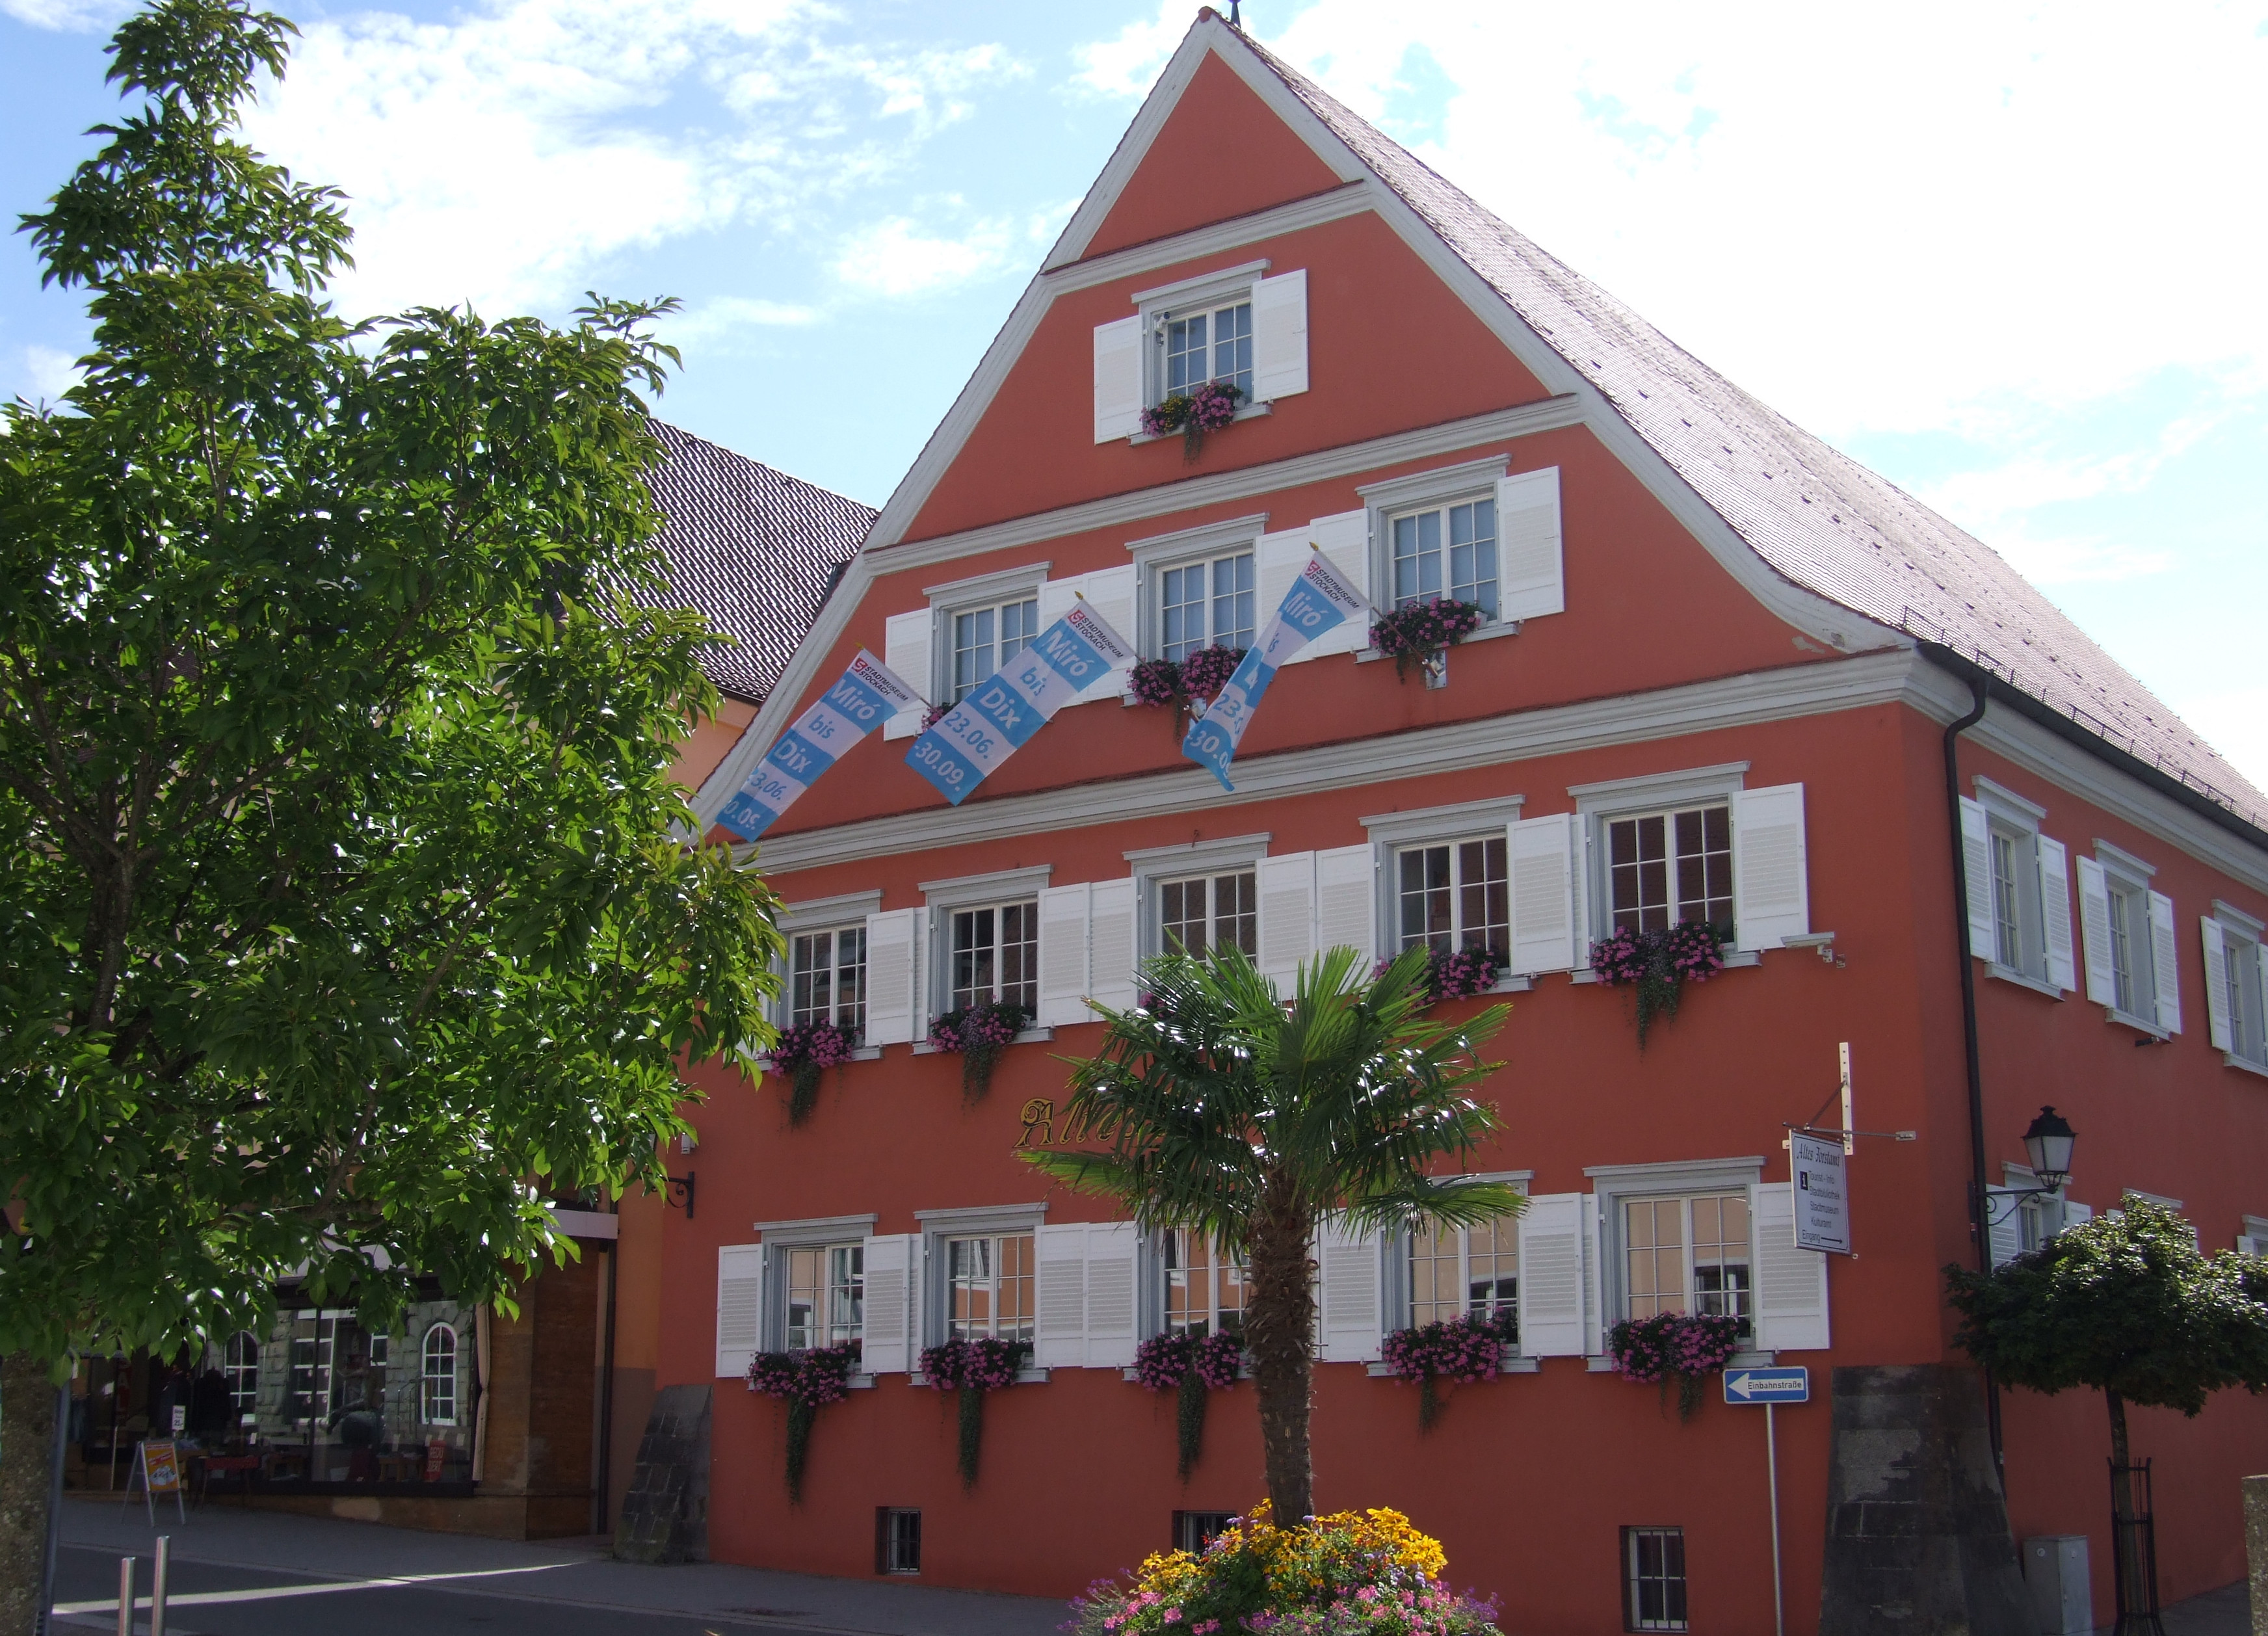 Das Alte Forstamt in Stockach